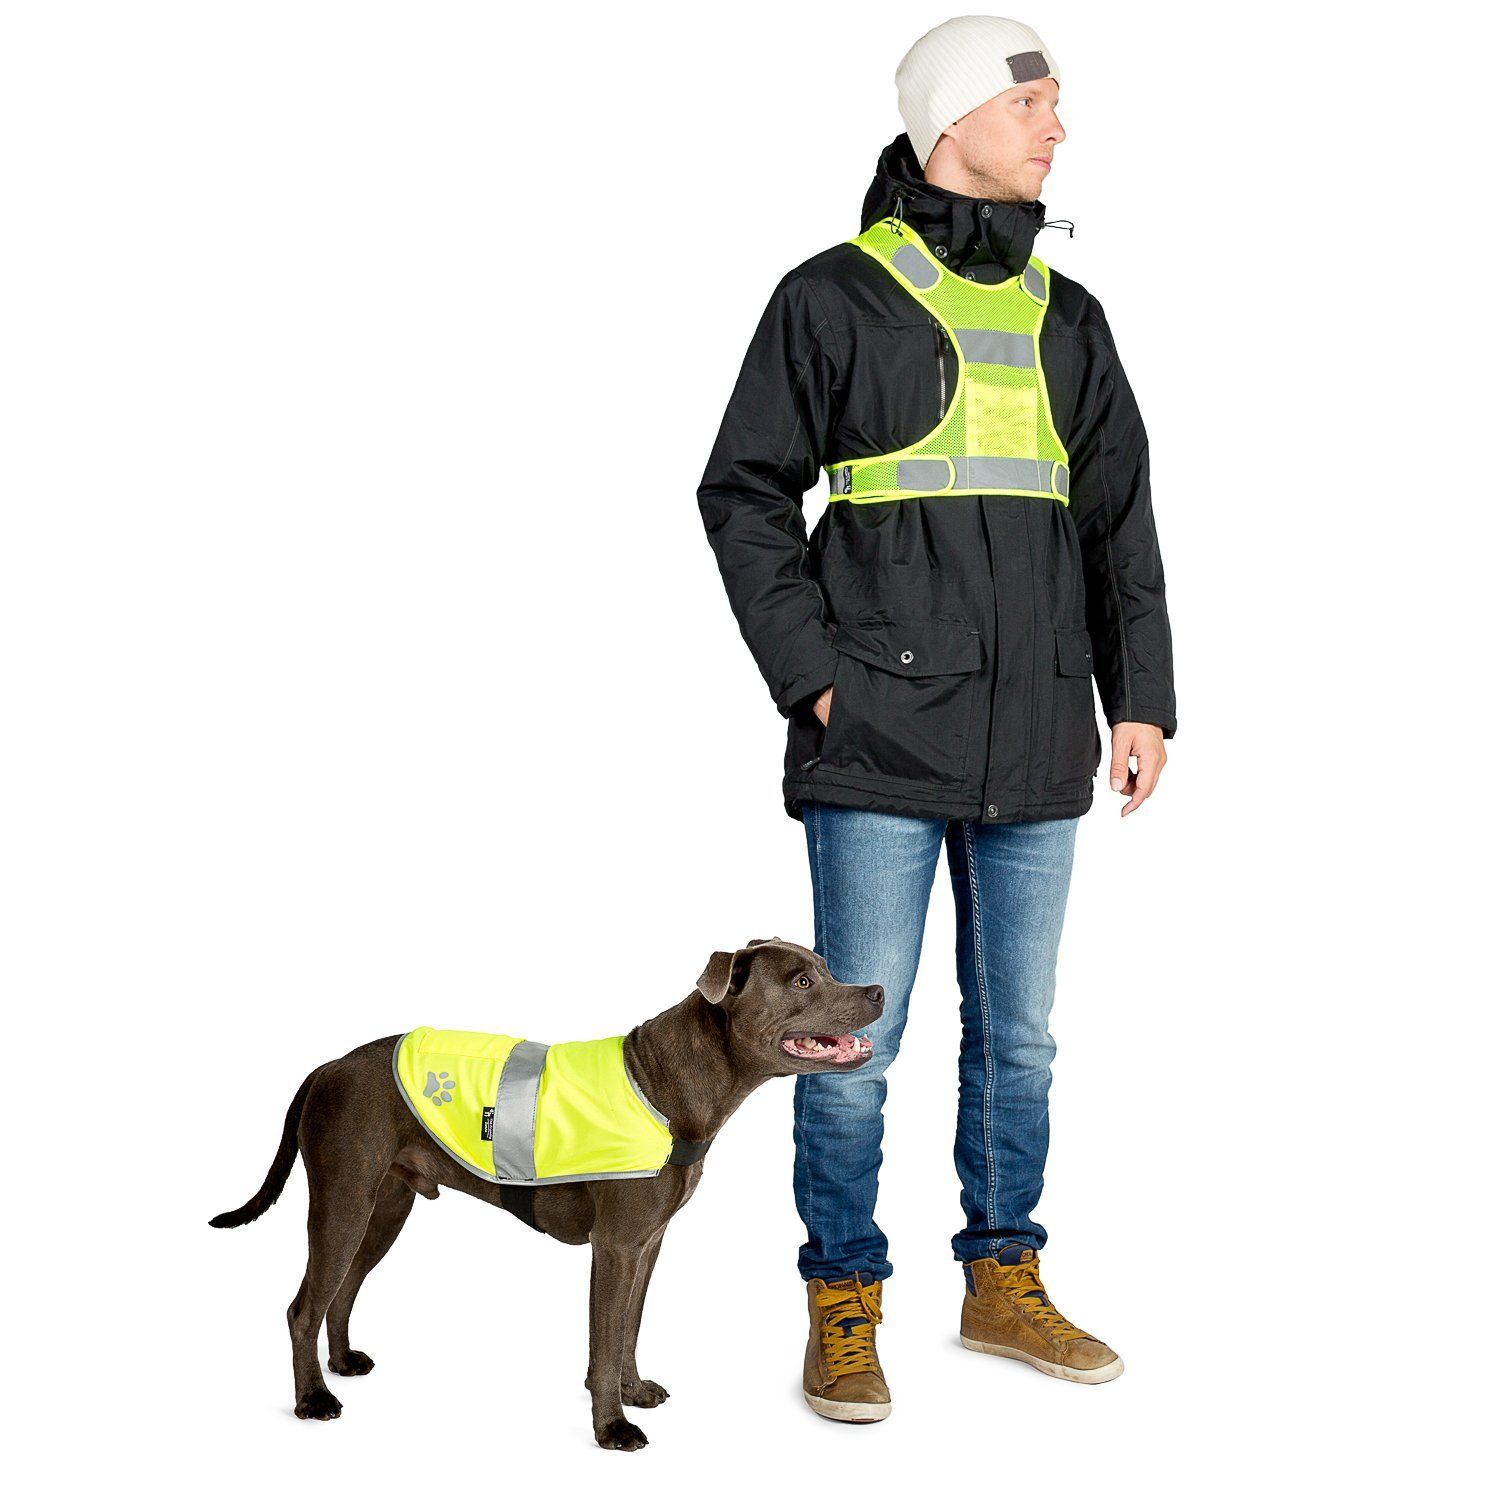 TheFriendly Swede Reflective Safety Dog Vest and